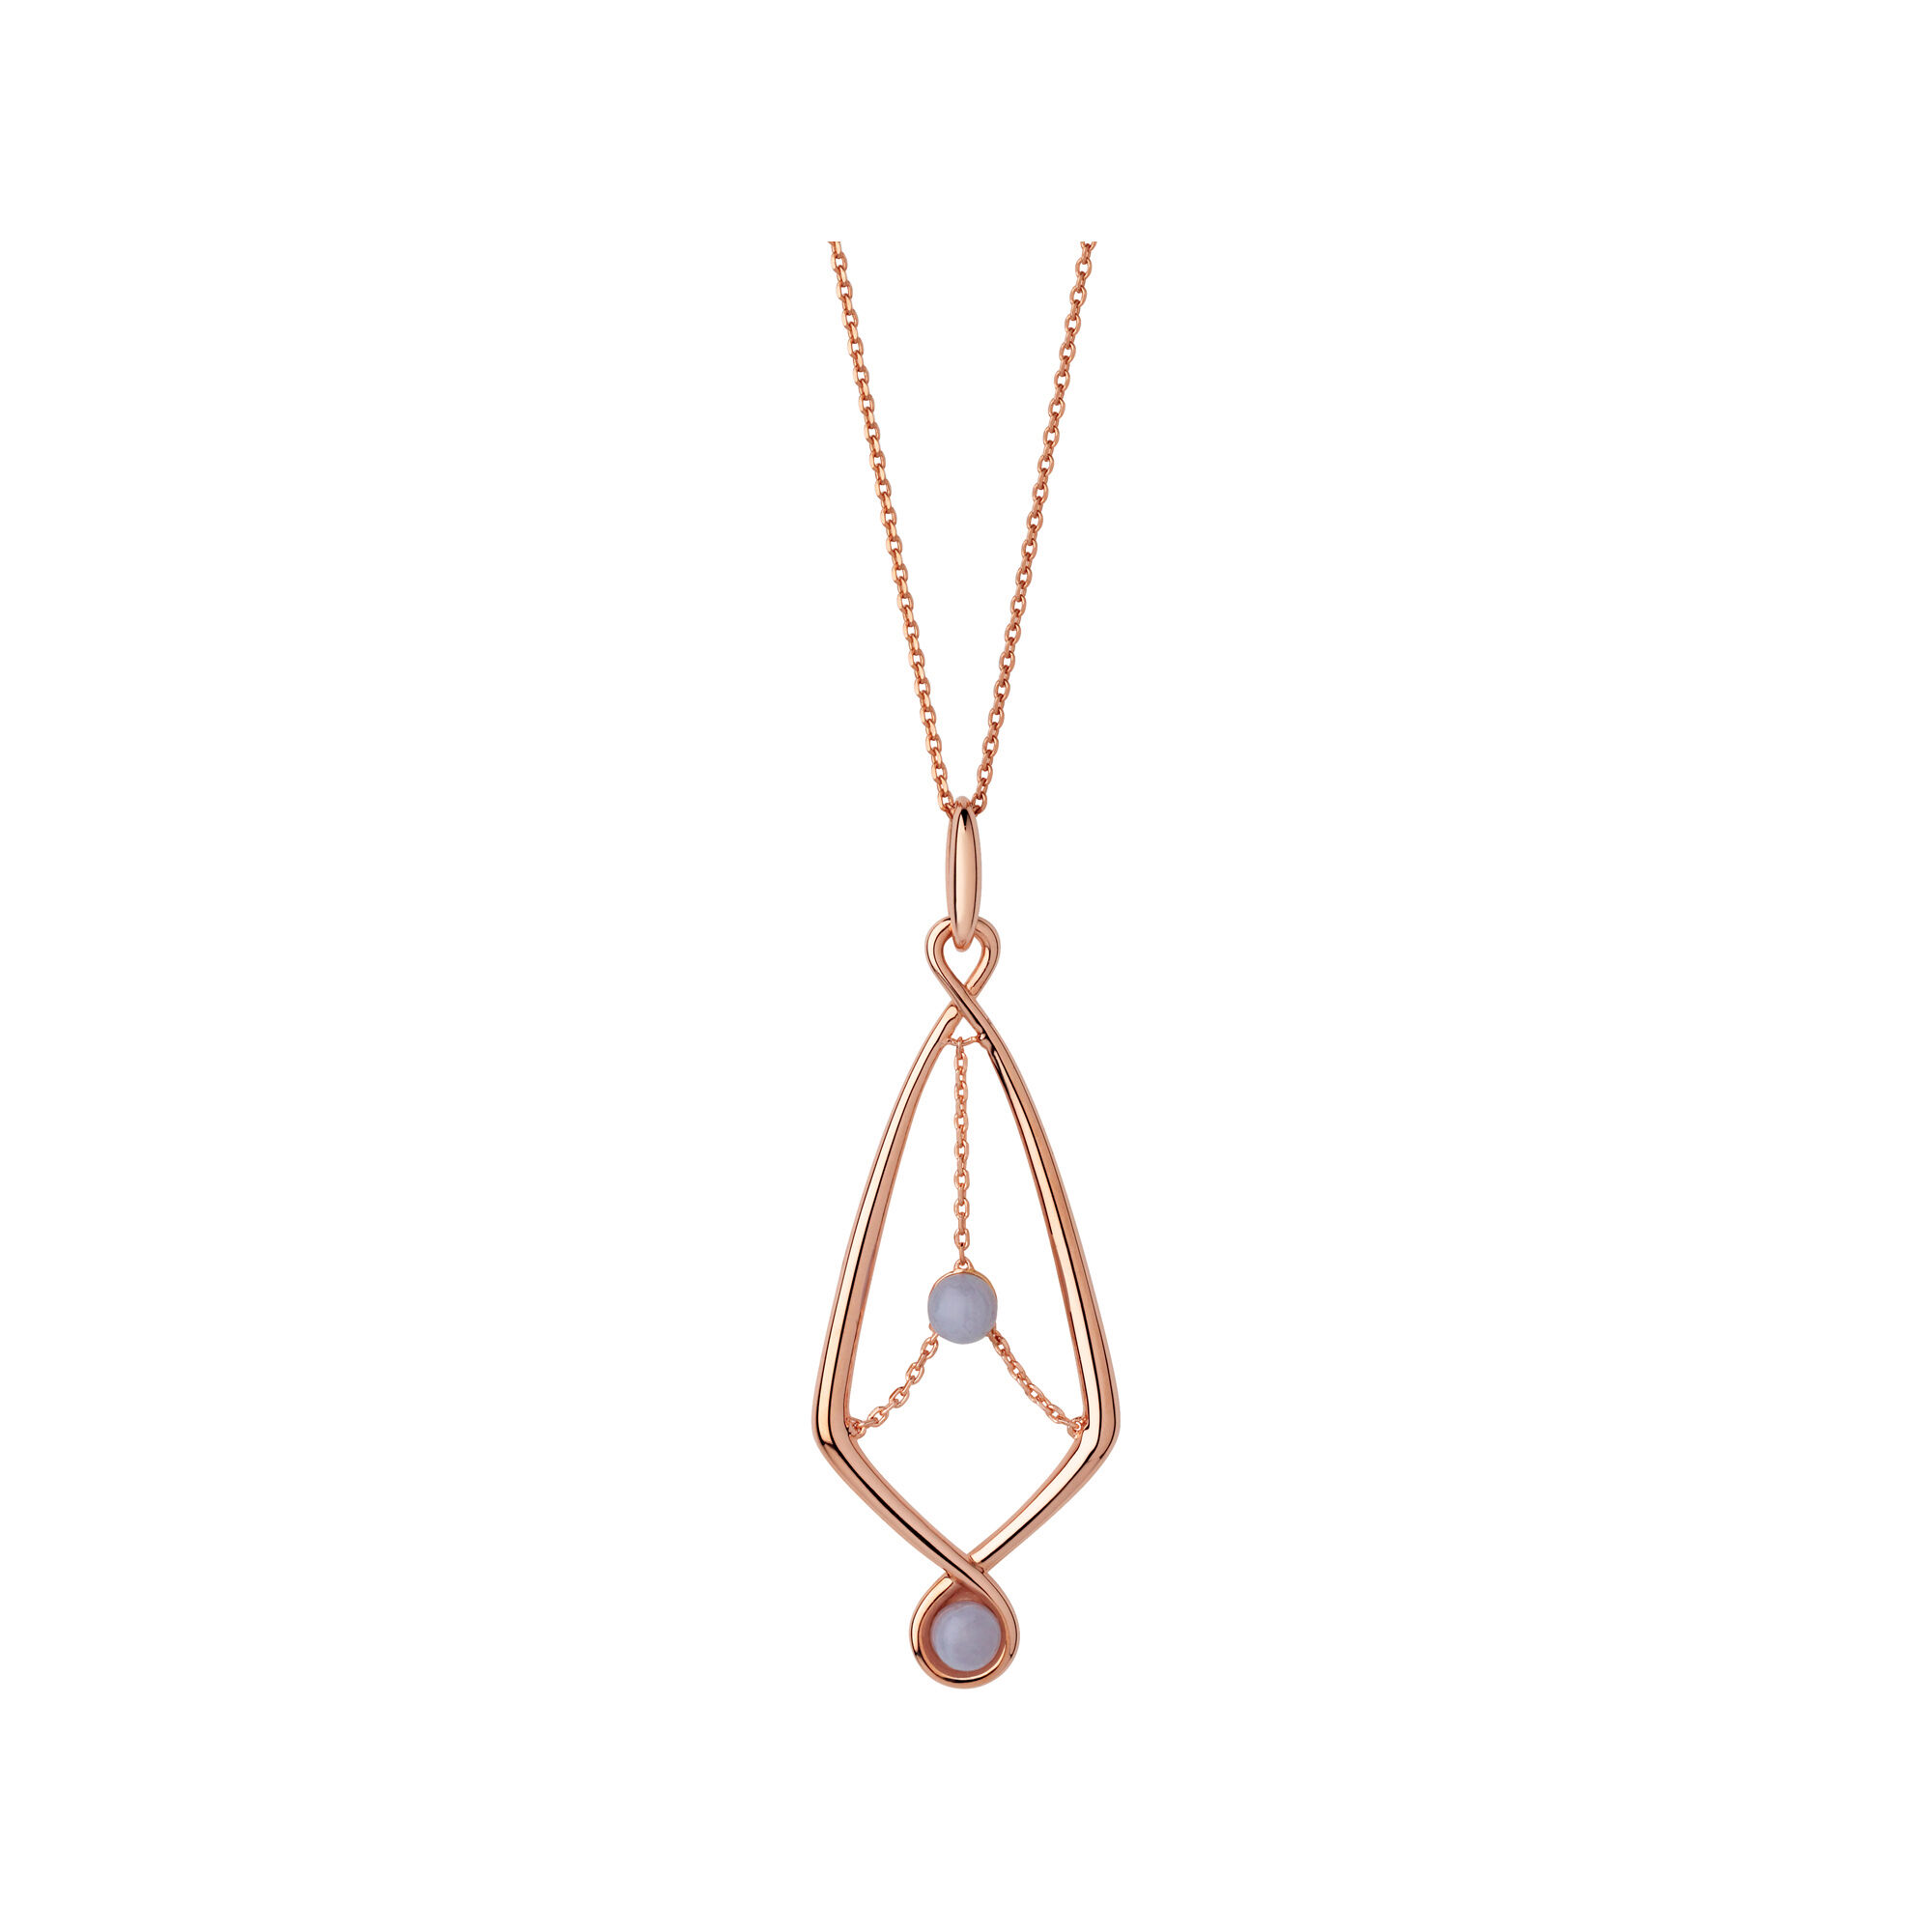 Serpentine 18kt rose gold vermeil blue lace agate gemstone serpentine 18kt rose gold vermeil amp blue lace agate gemstone pendant necklace hires aloadofball Choice Image